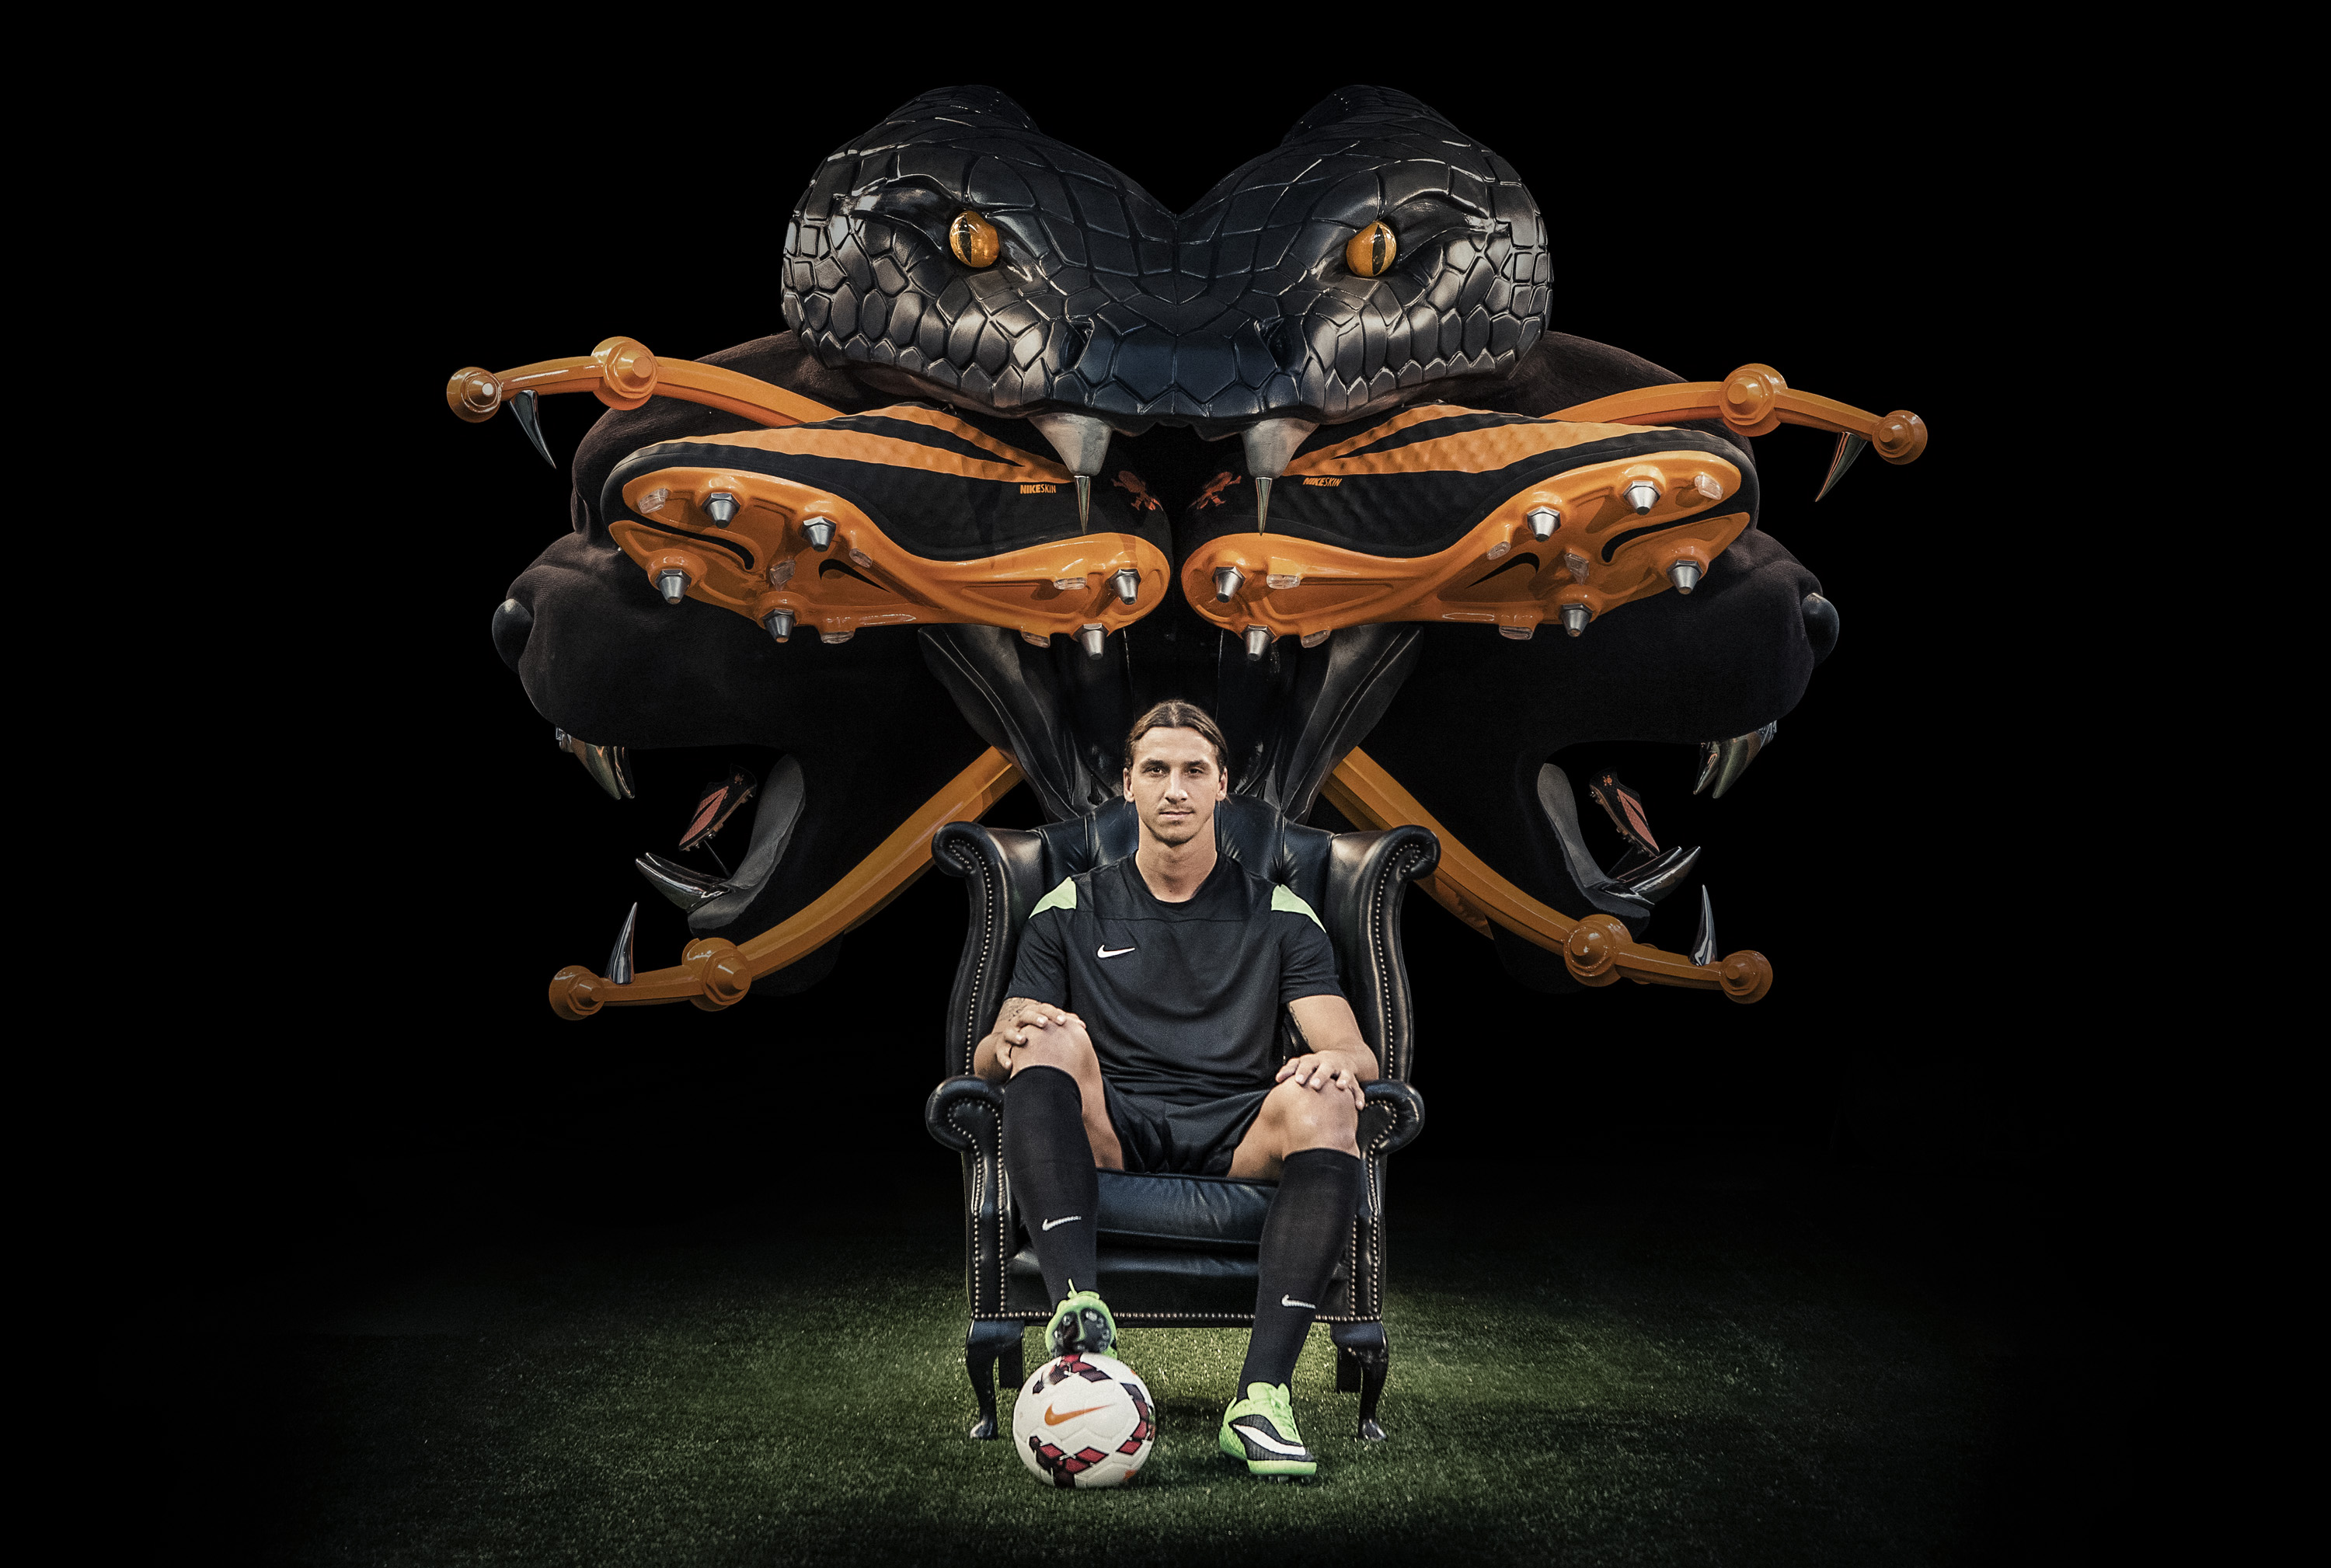 What Shoes Does Zlatan Ibrahimovic Wear